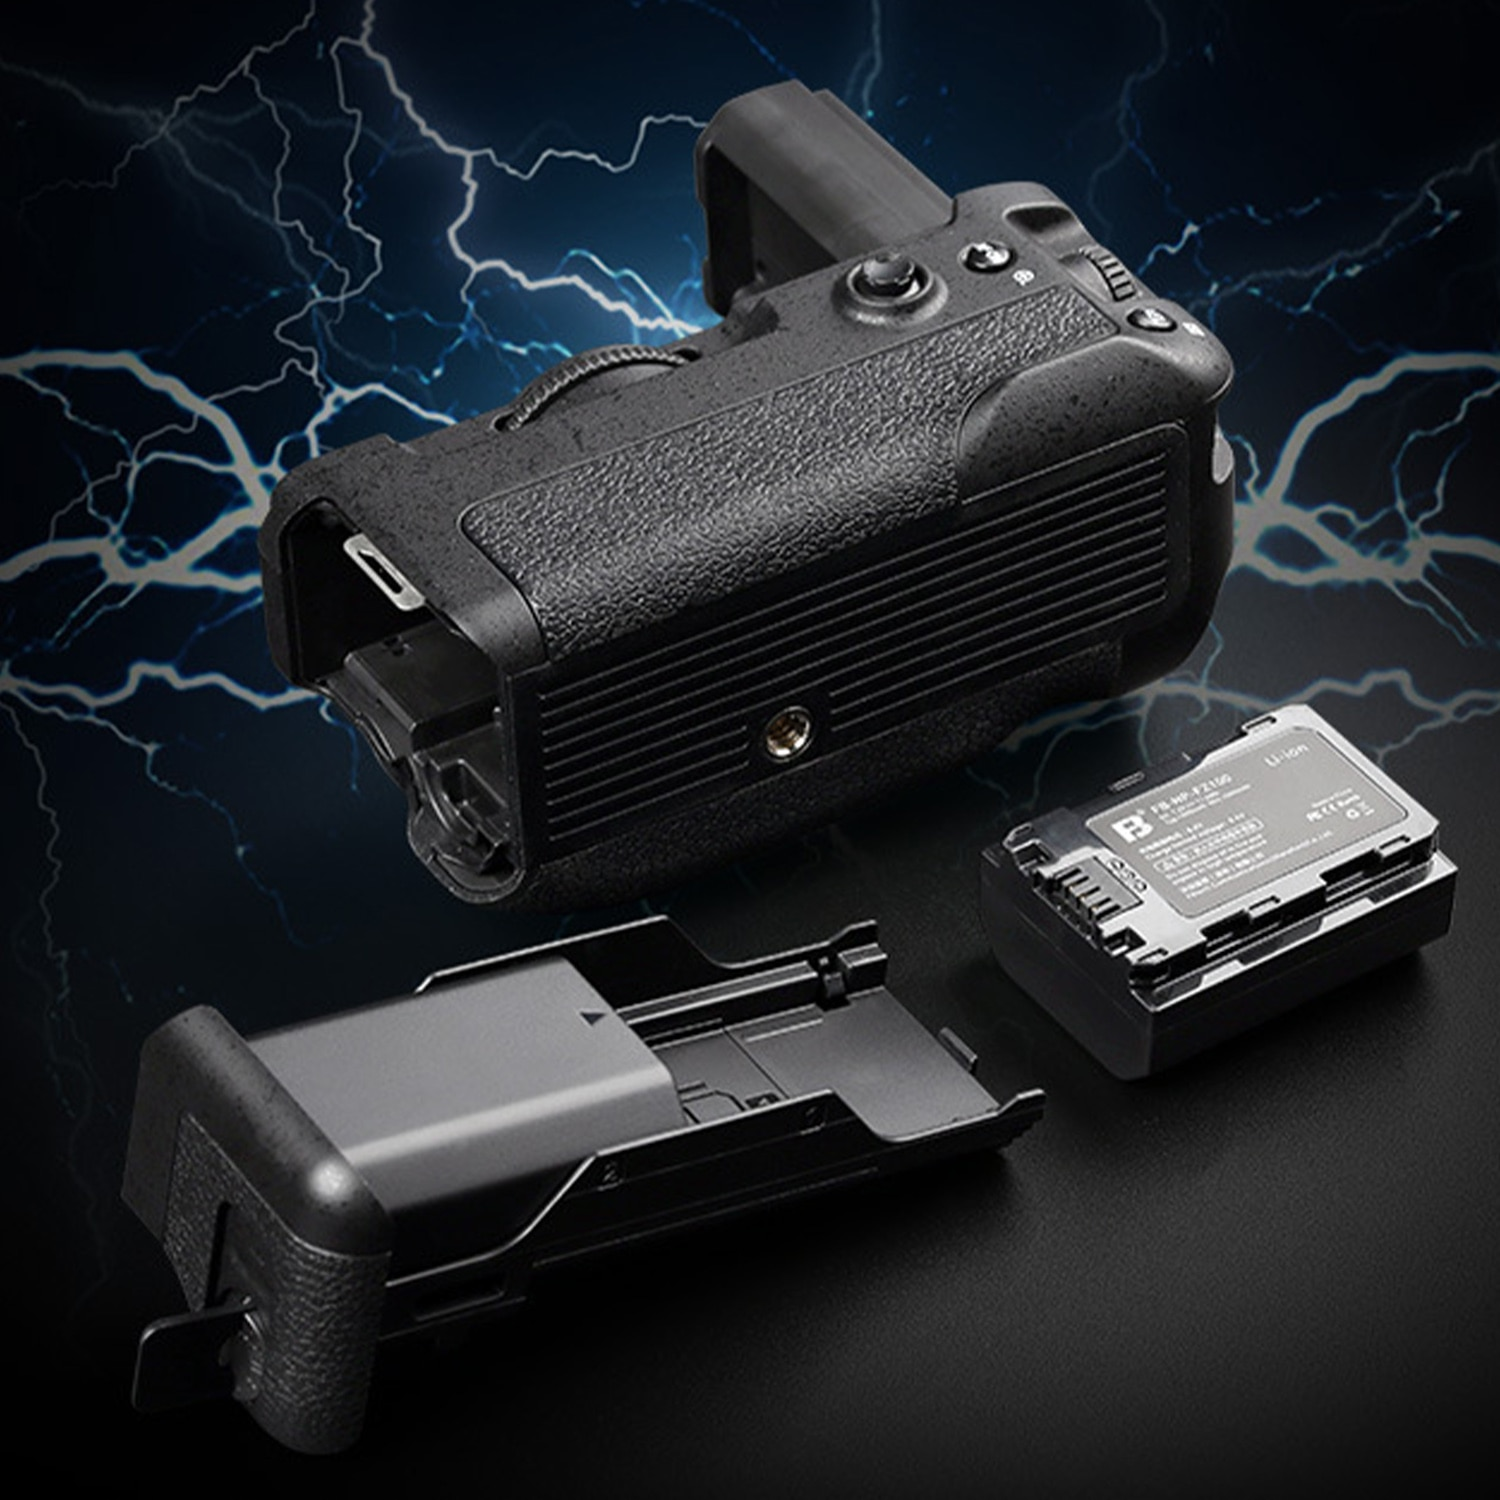 VG-C3EM handle battery pack battery grip for Sony A9 A7RM3 A7M3 A7M4 SLR mirrorless camera handle enlarge